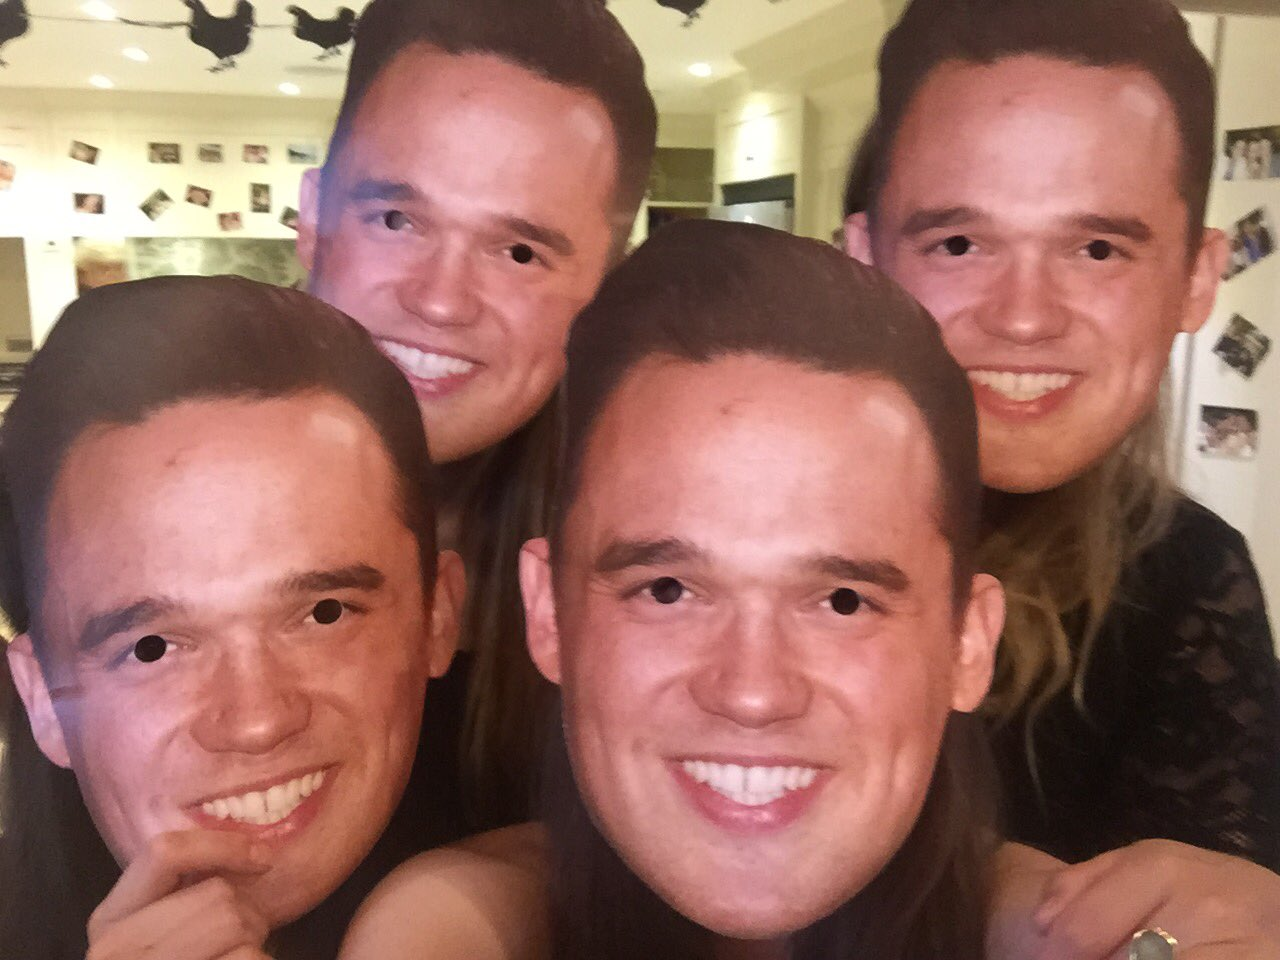 RT @kayleighmartin: 🥂 @Gareth_Gates when you're at a hen do and your masks are of the Bride's childhood crush ❤️❤️ https://t.co/Fy0oXikFld